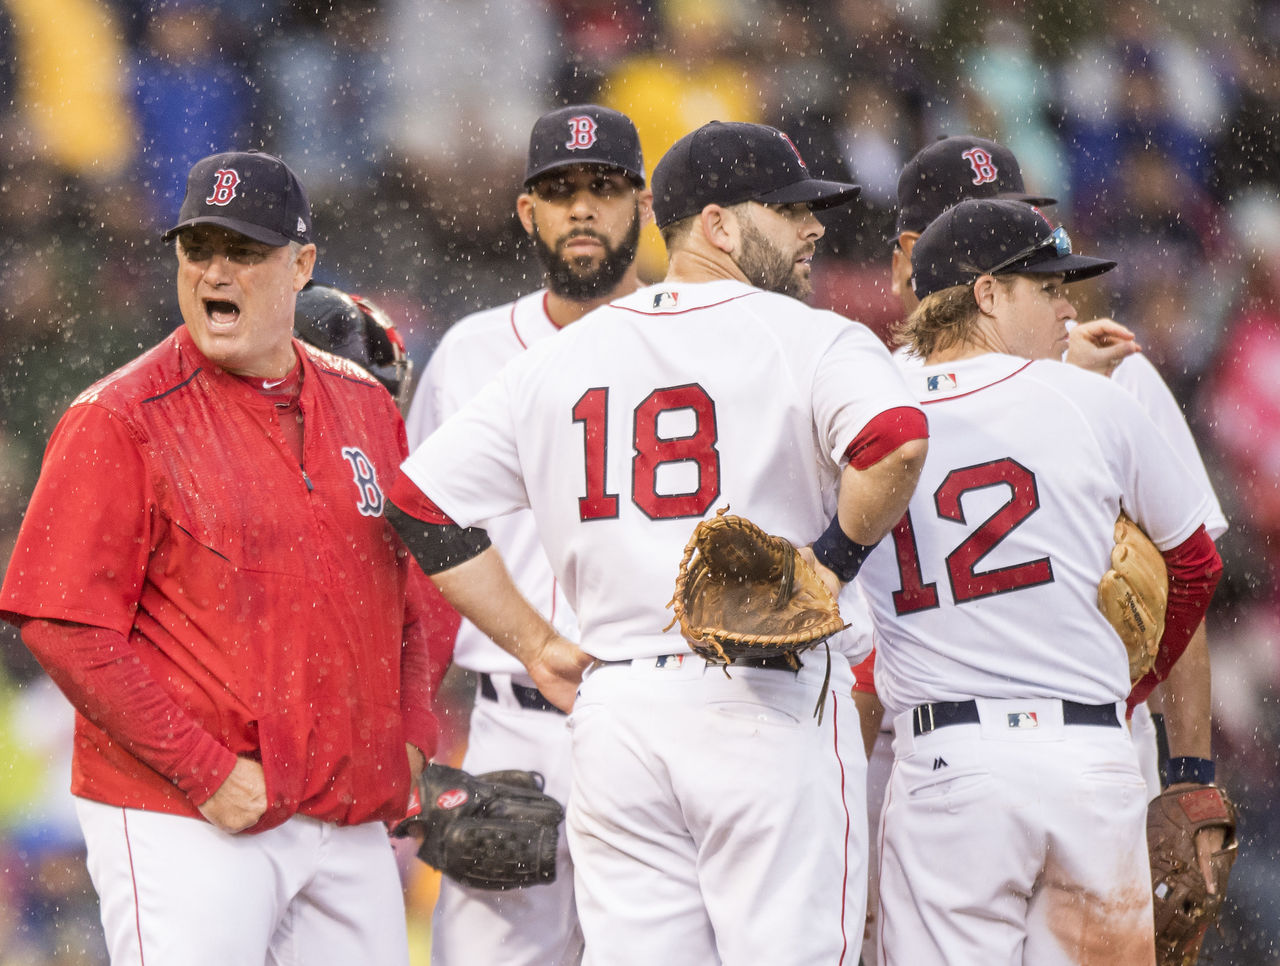 Debate: Did the Red Sox make the right move letting Farrell go?